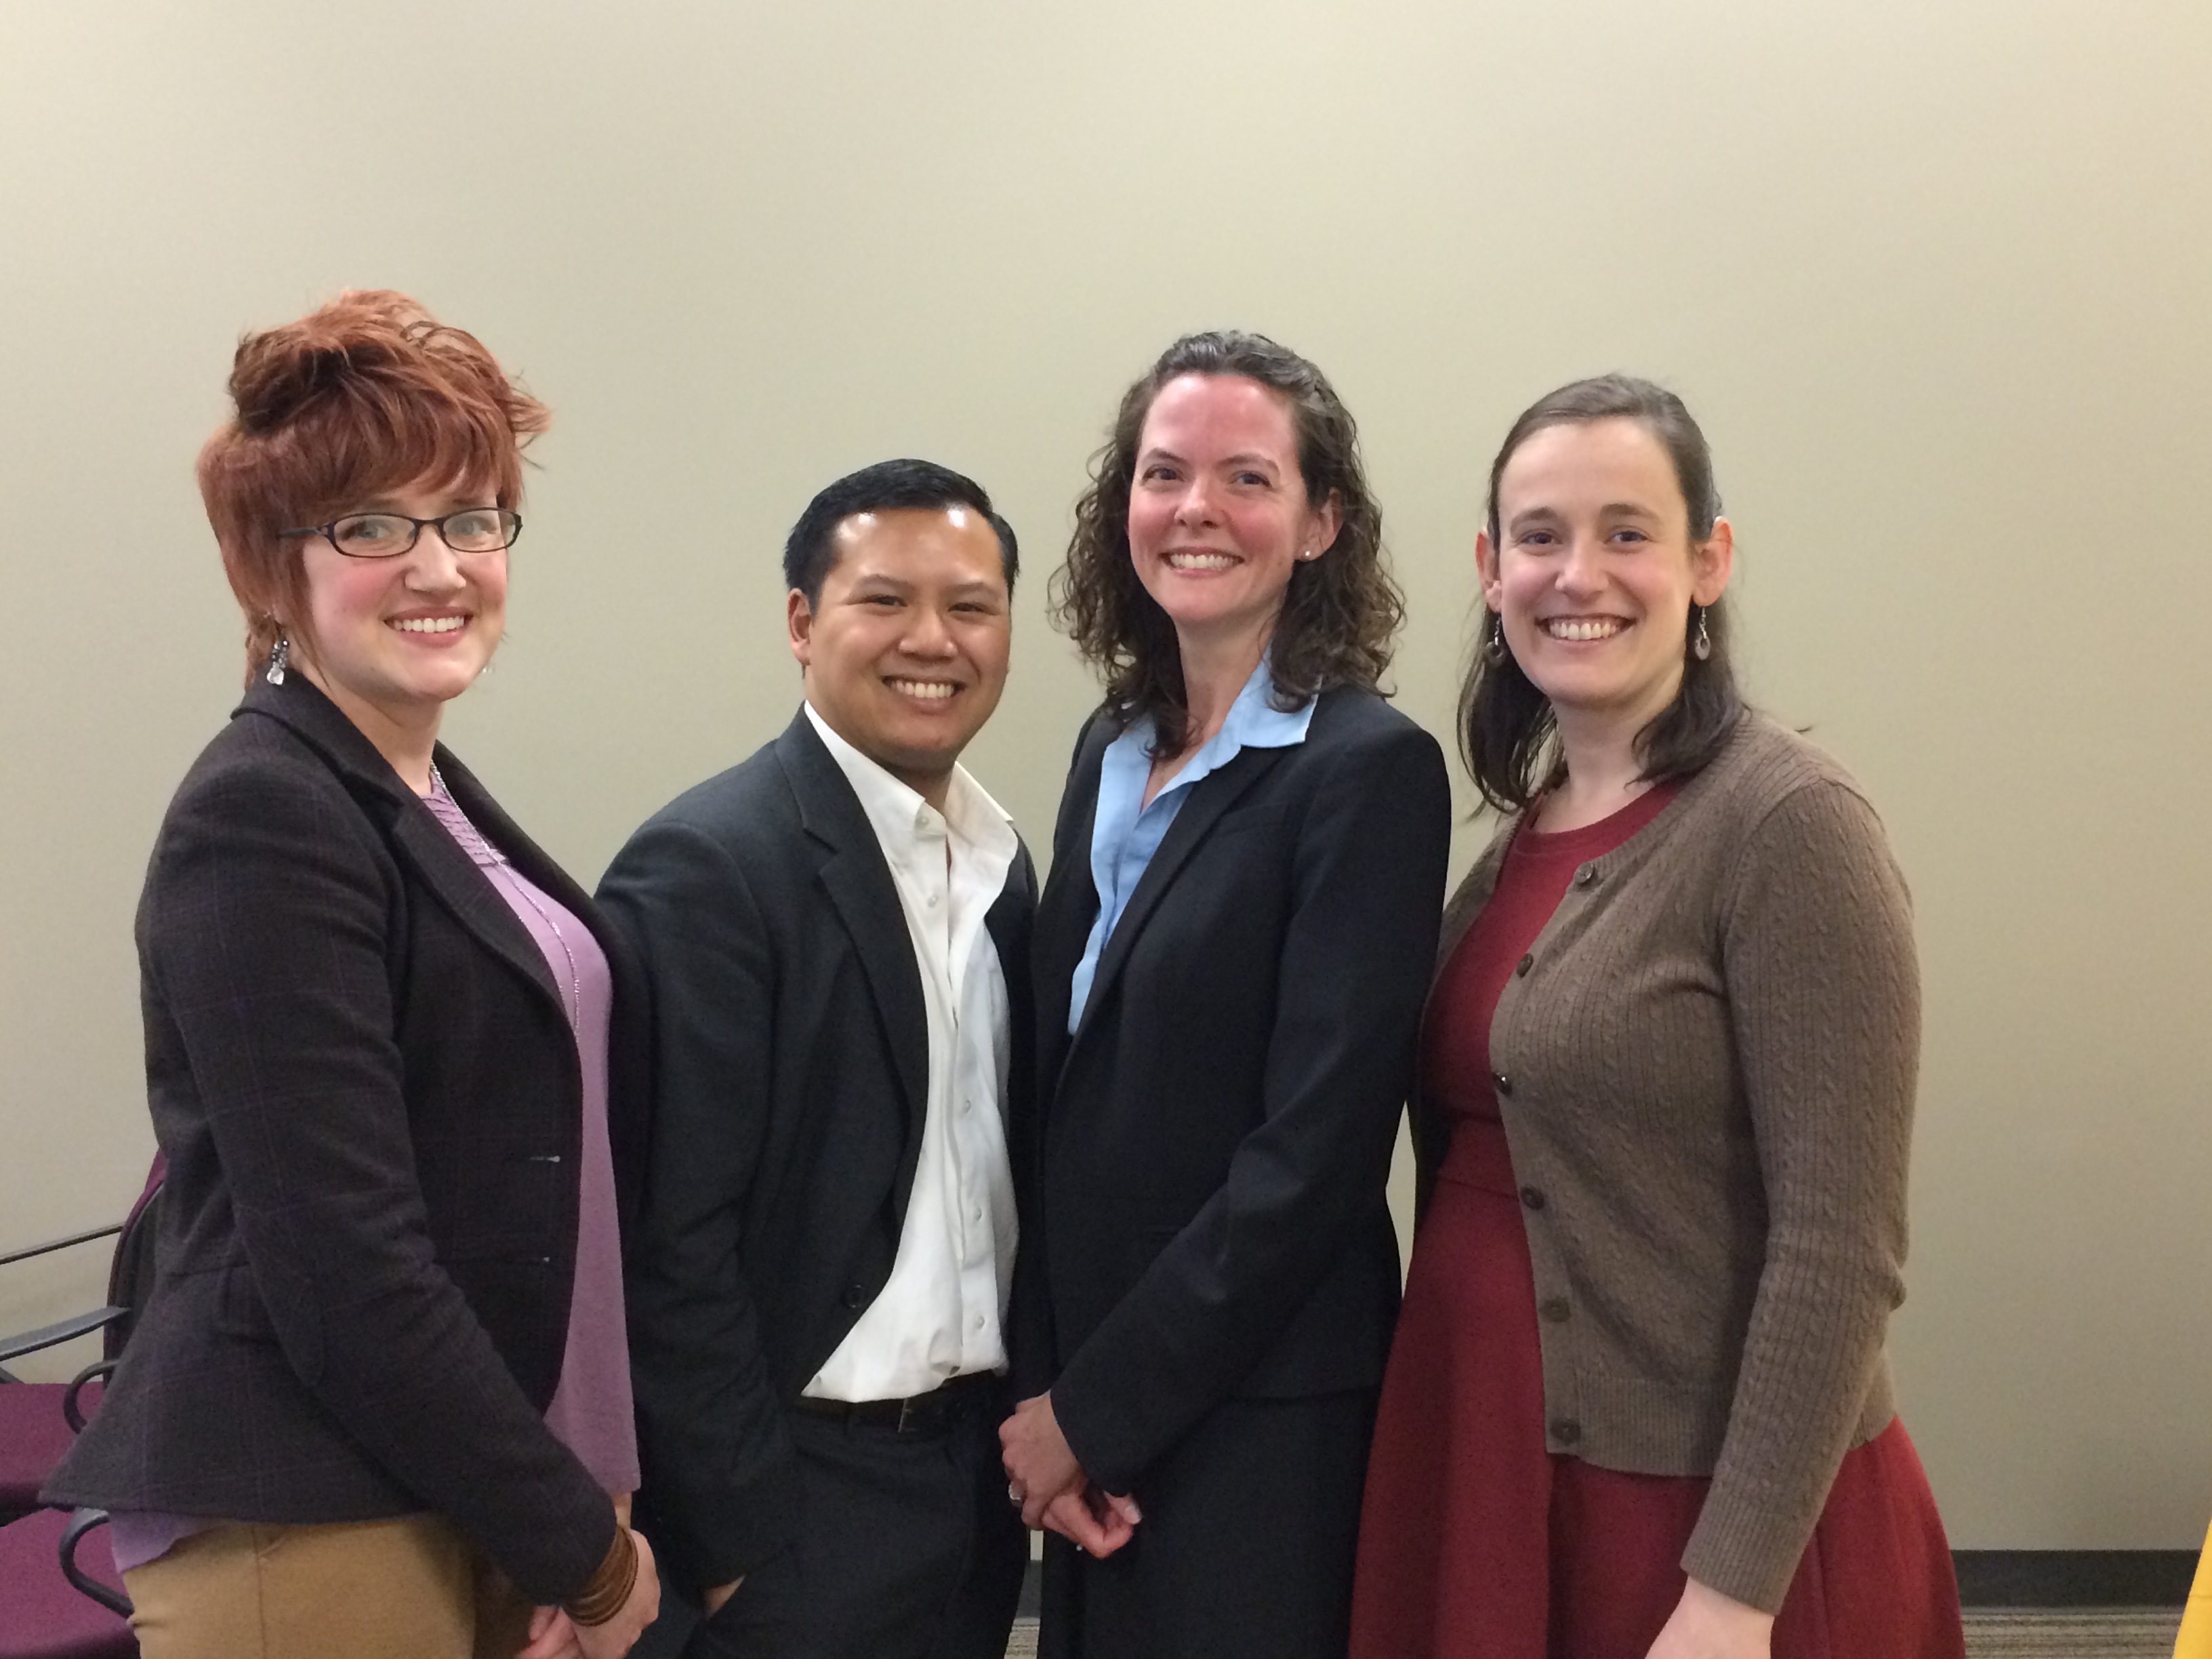 Winners of the 2016 3MT Maryland Competition: Ken Estrellas and Alexandra Pucsek